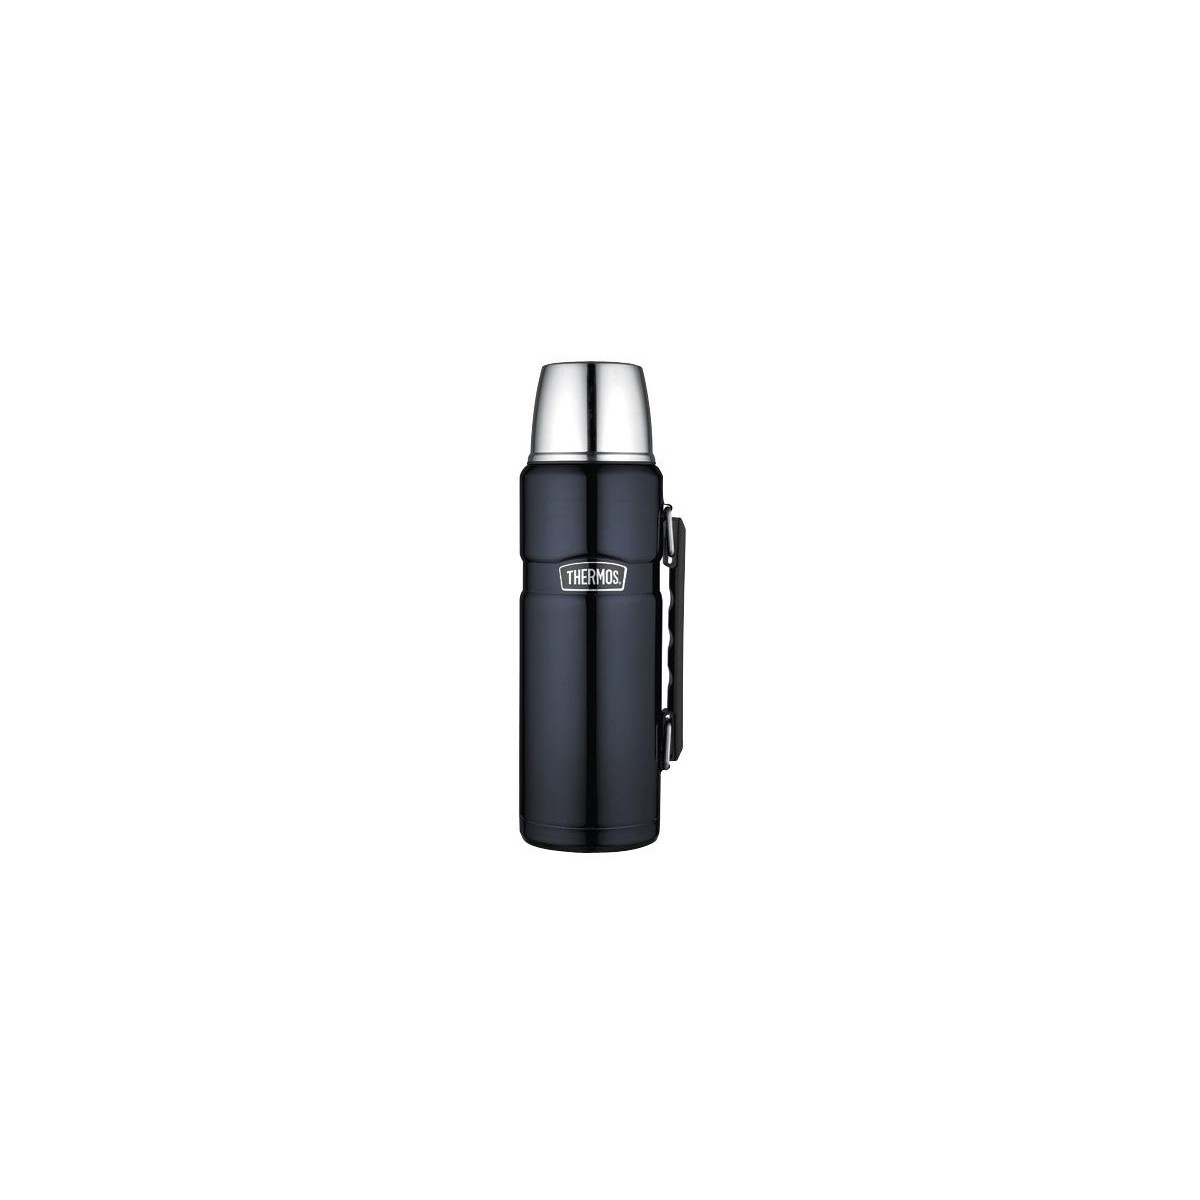 Verre Thermos Bouteille Thermos Mundu Fr